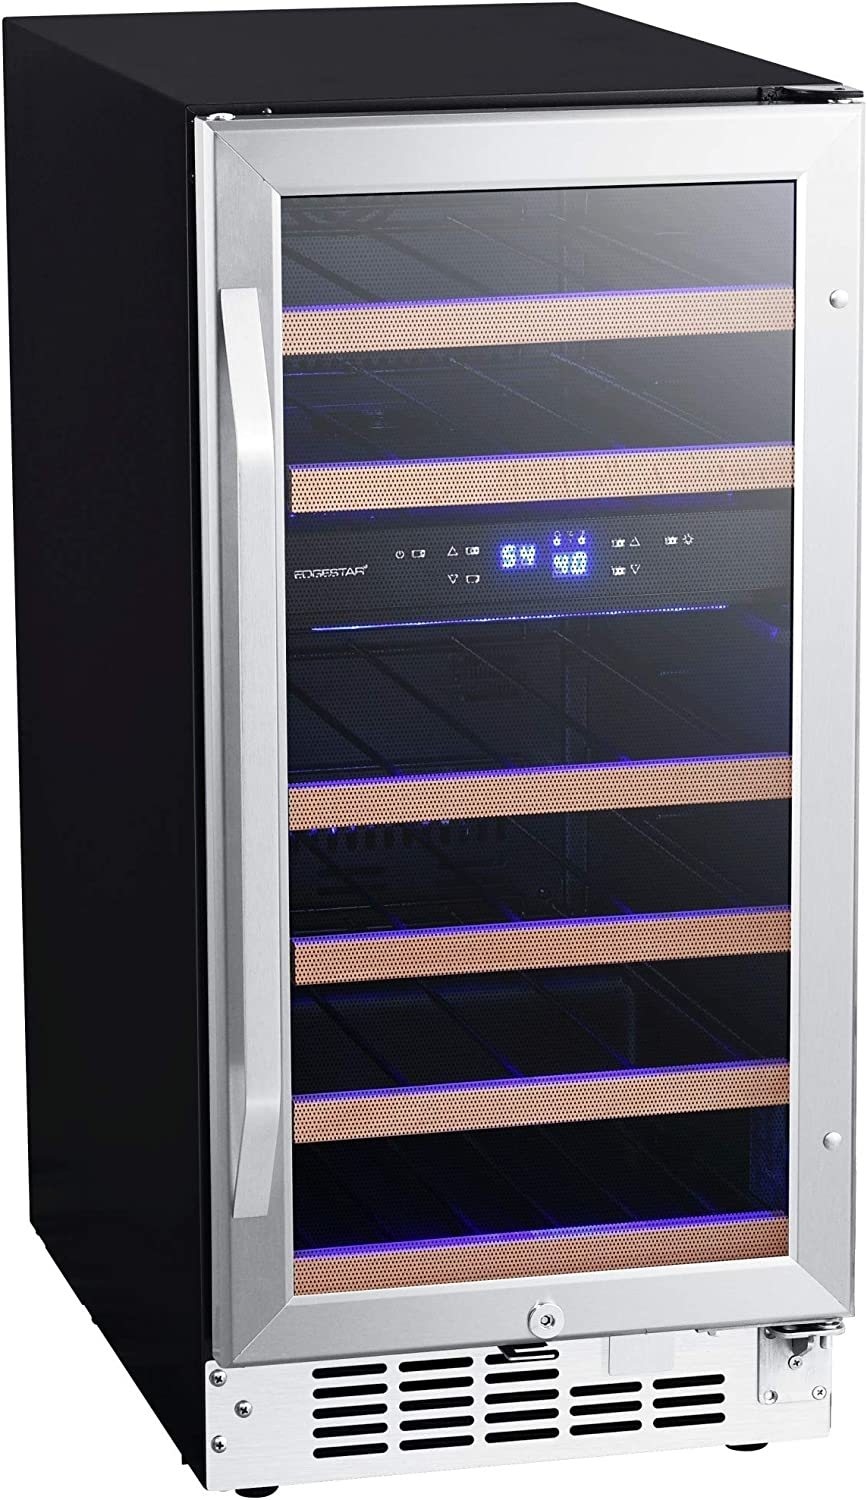 EdgeStar CWR263DZ 15 Inch Wide 26 Bottle Built-In Wine Cooler with Dual Cooling Zones